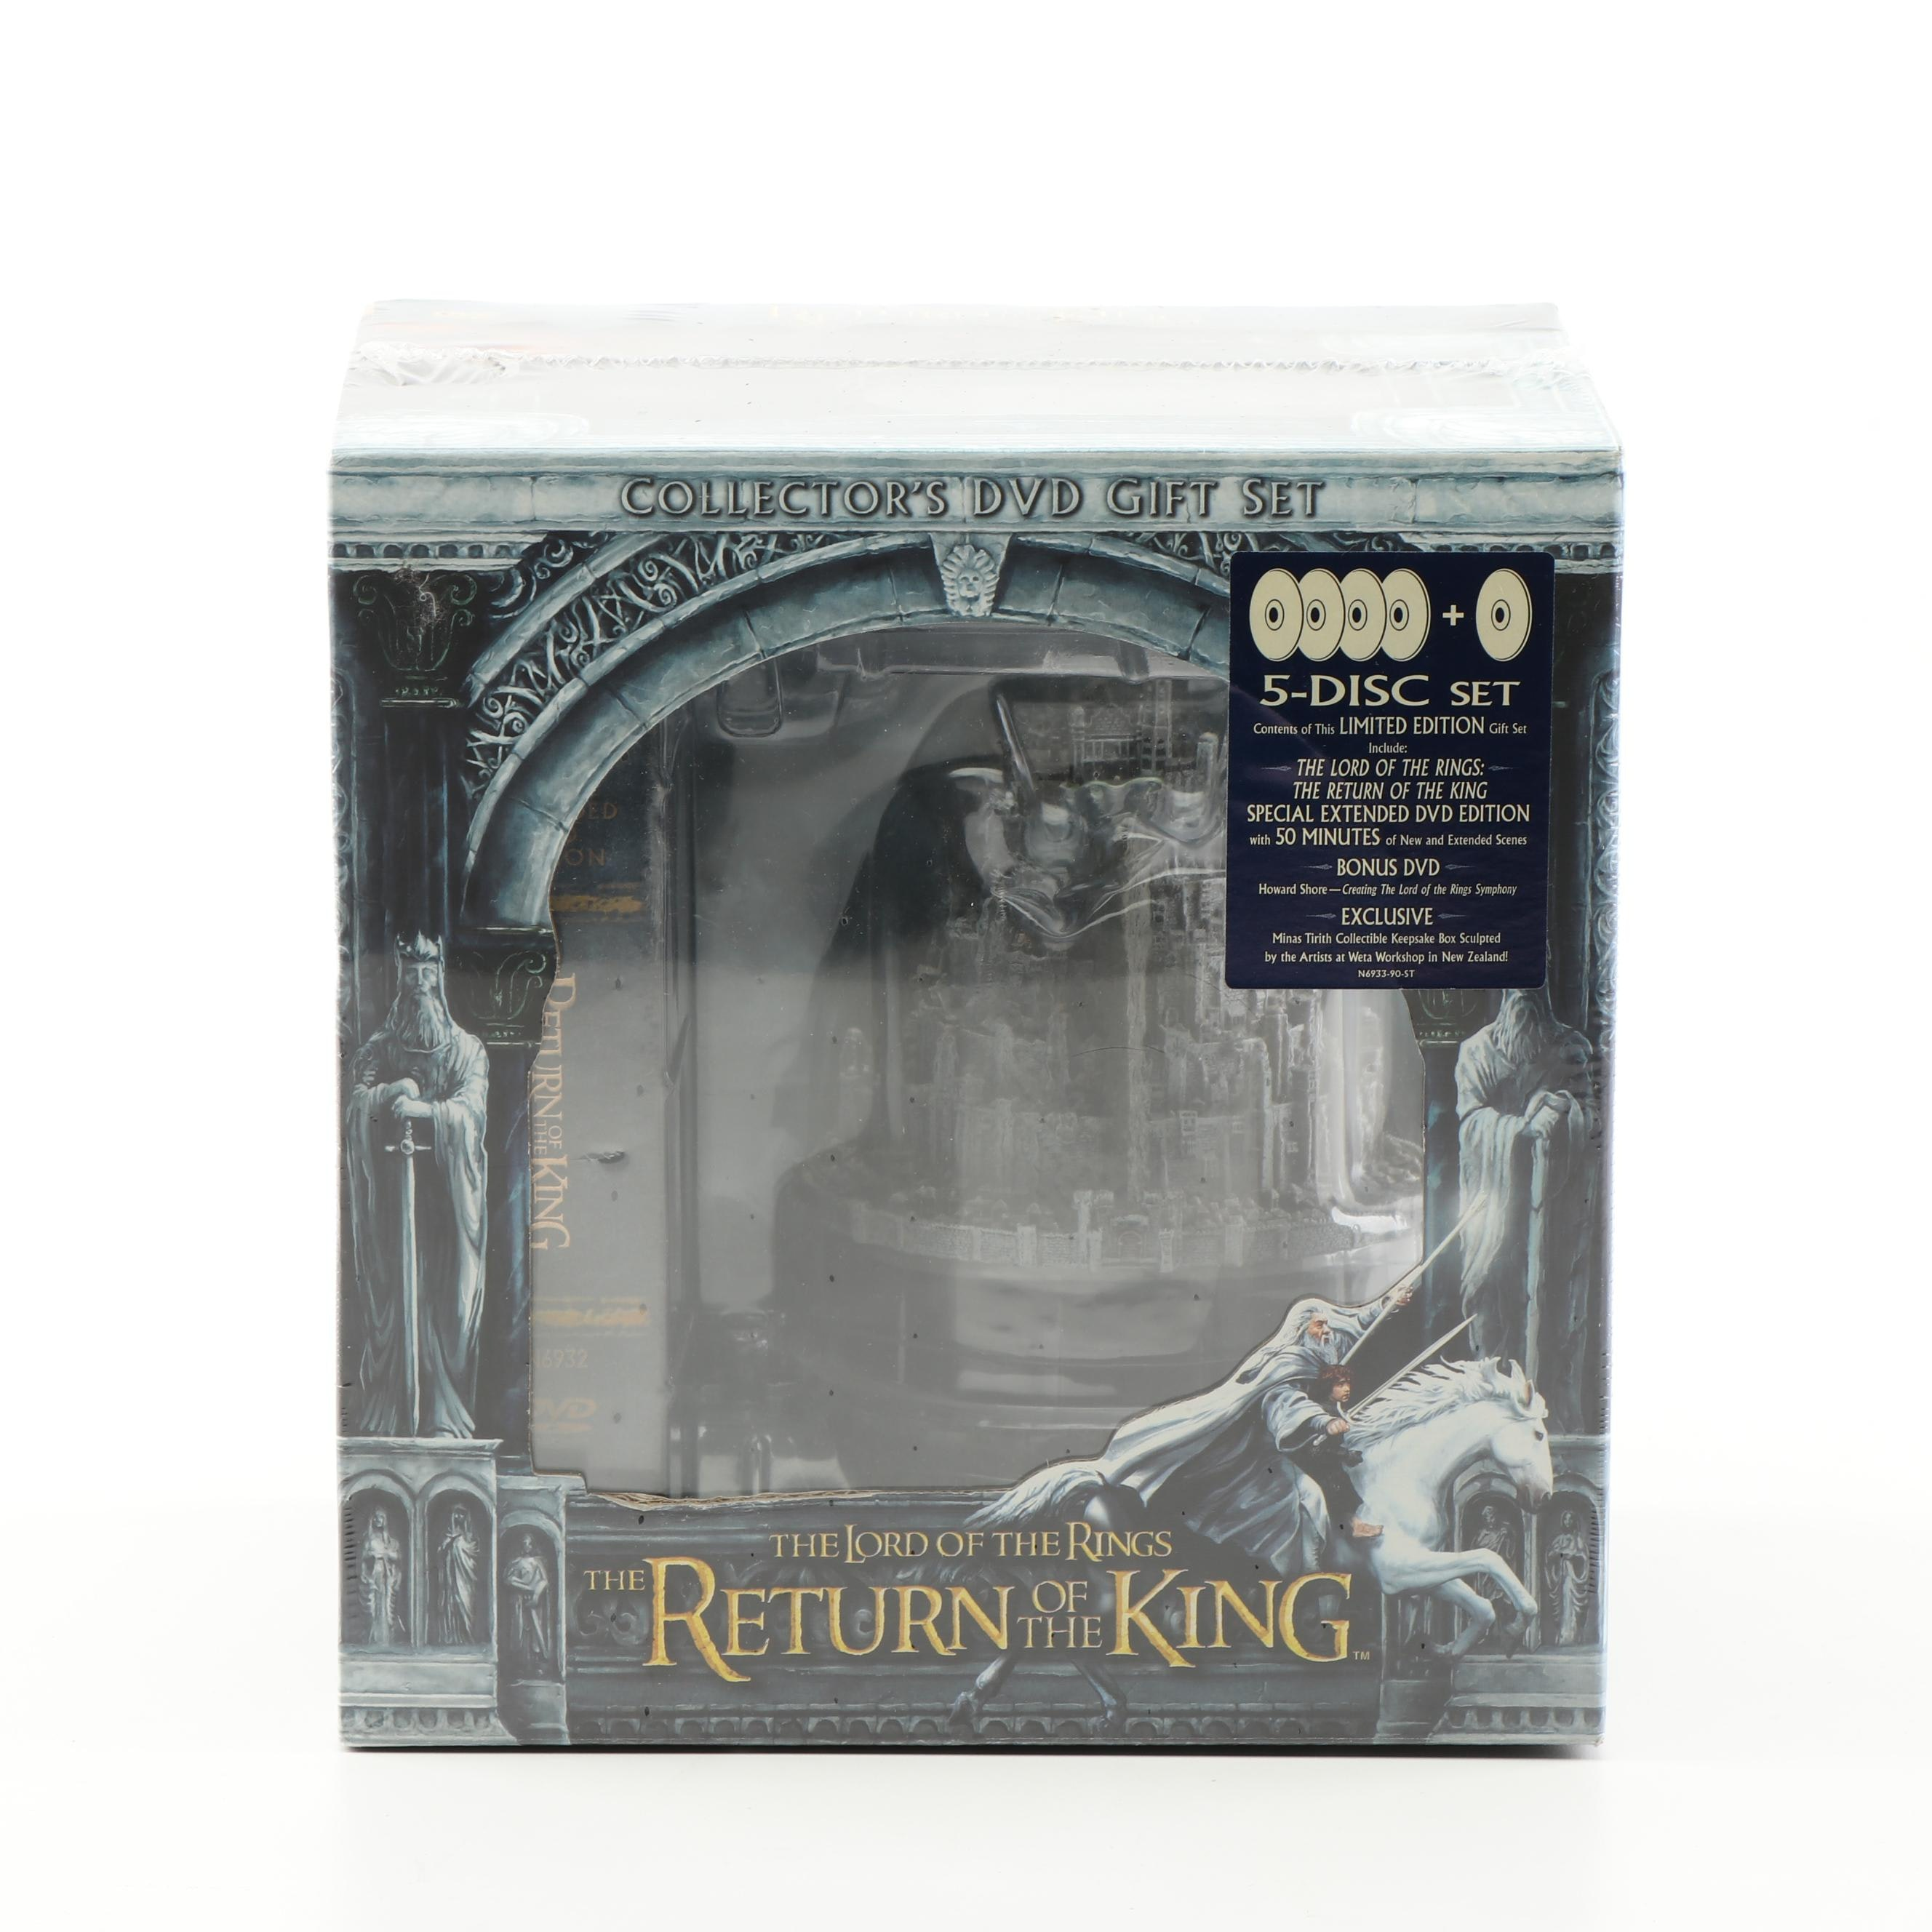 """""""The Lord of The Rings: The Return of the King"""" Collector's DVD Gift Set"""